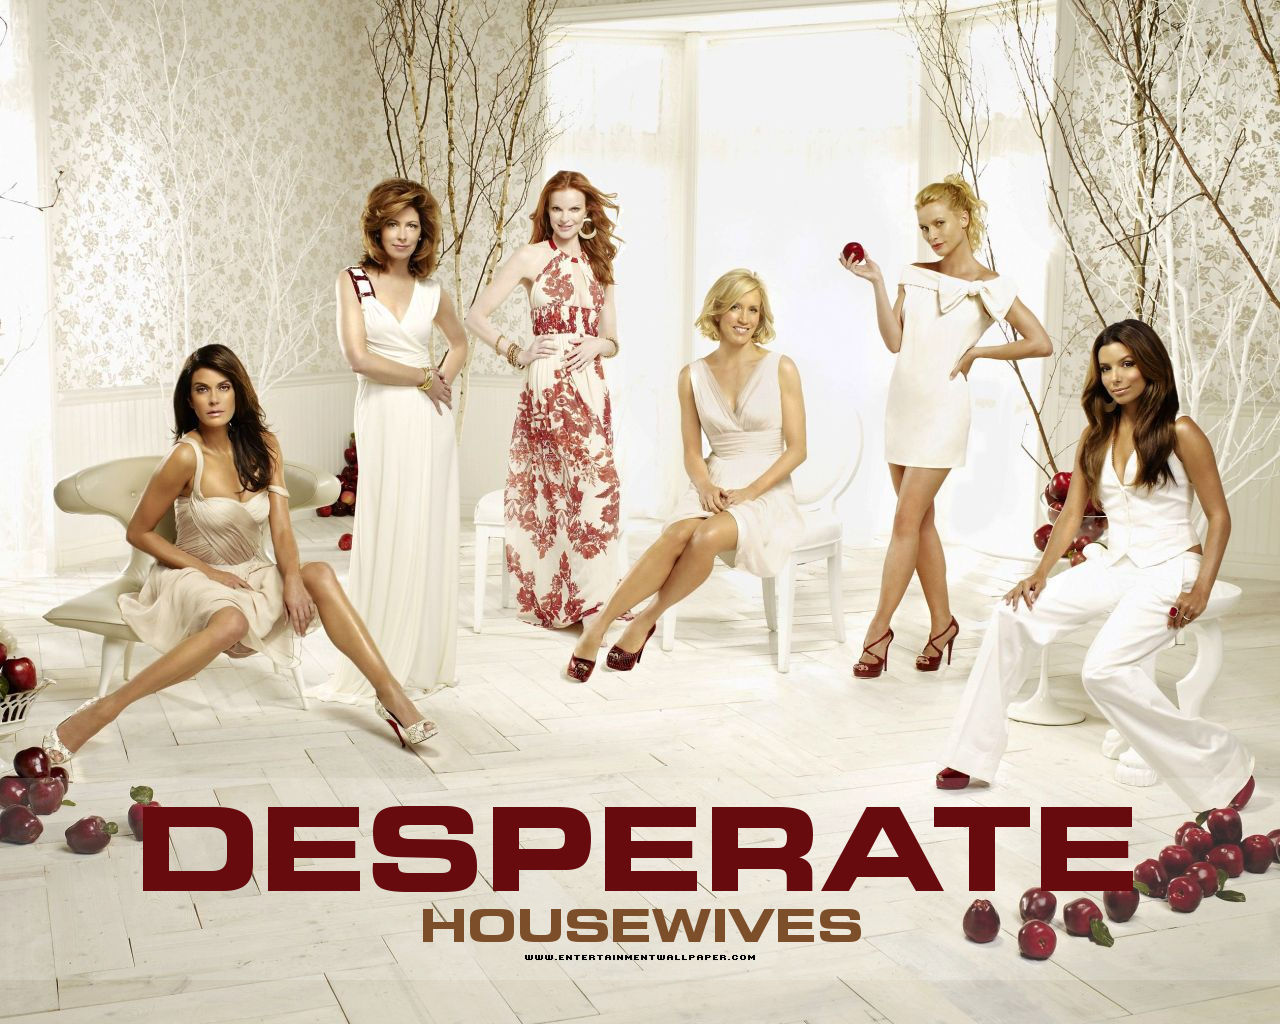 Desperate Housewives DH Desperatehousewives